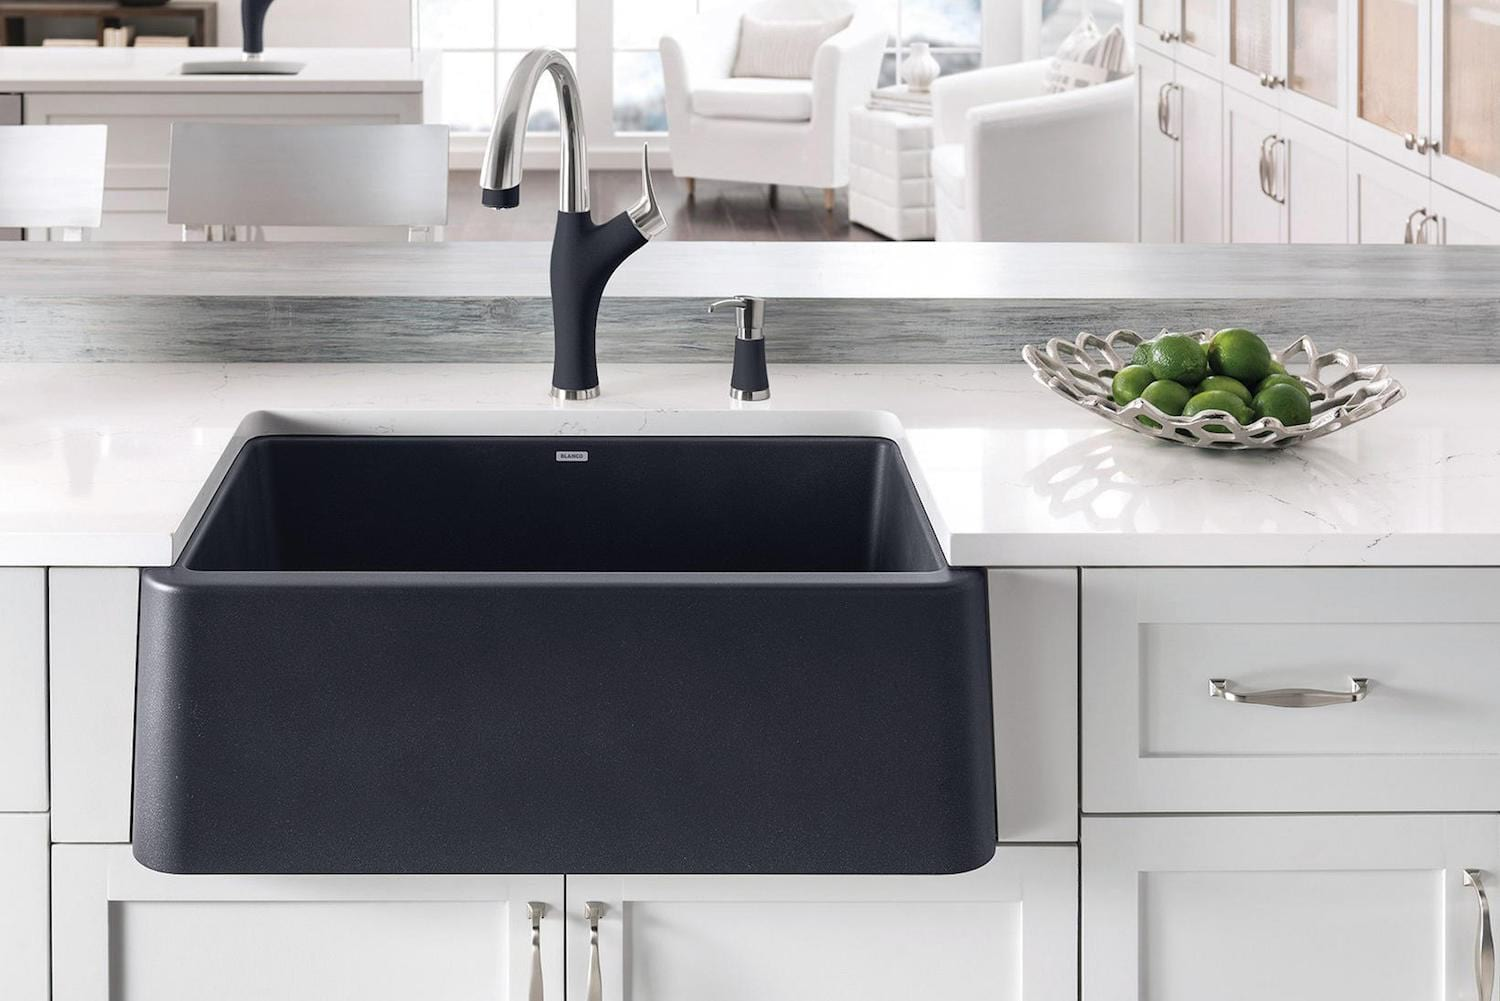 Granite Sinks: Everything You Need to Know | QualityBath.com ...